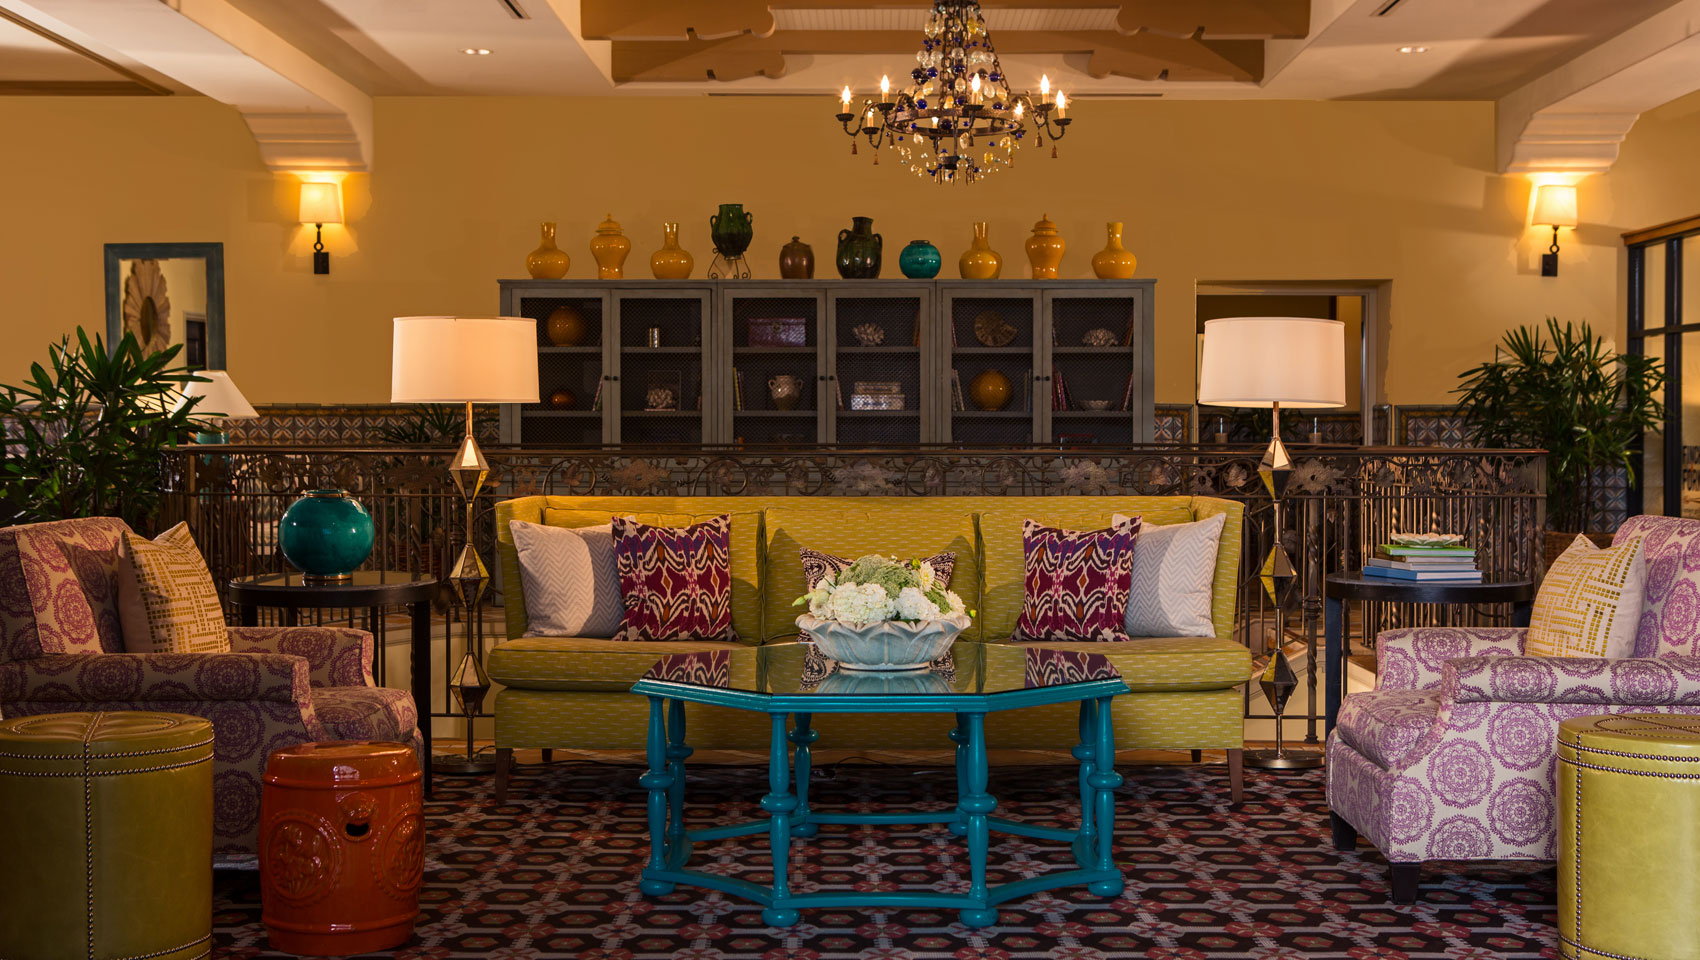 Hotel Lobby With Couches And Bookshelves